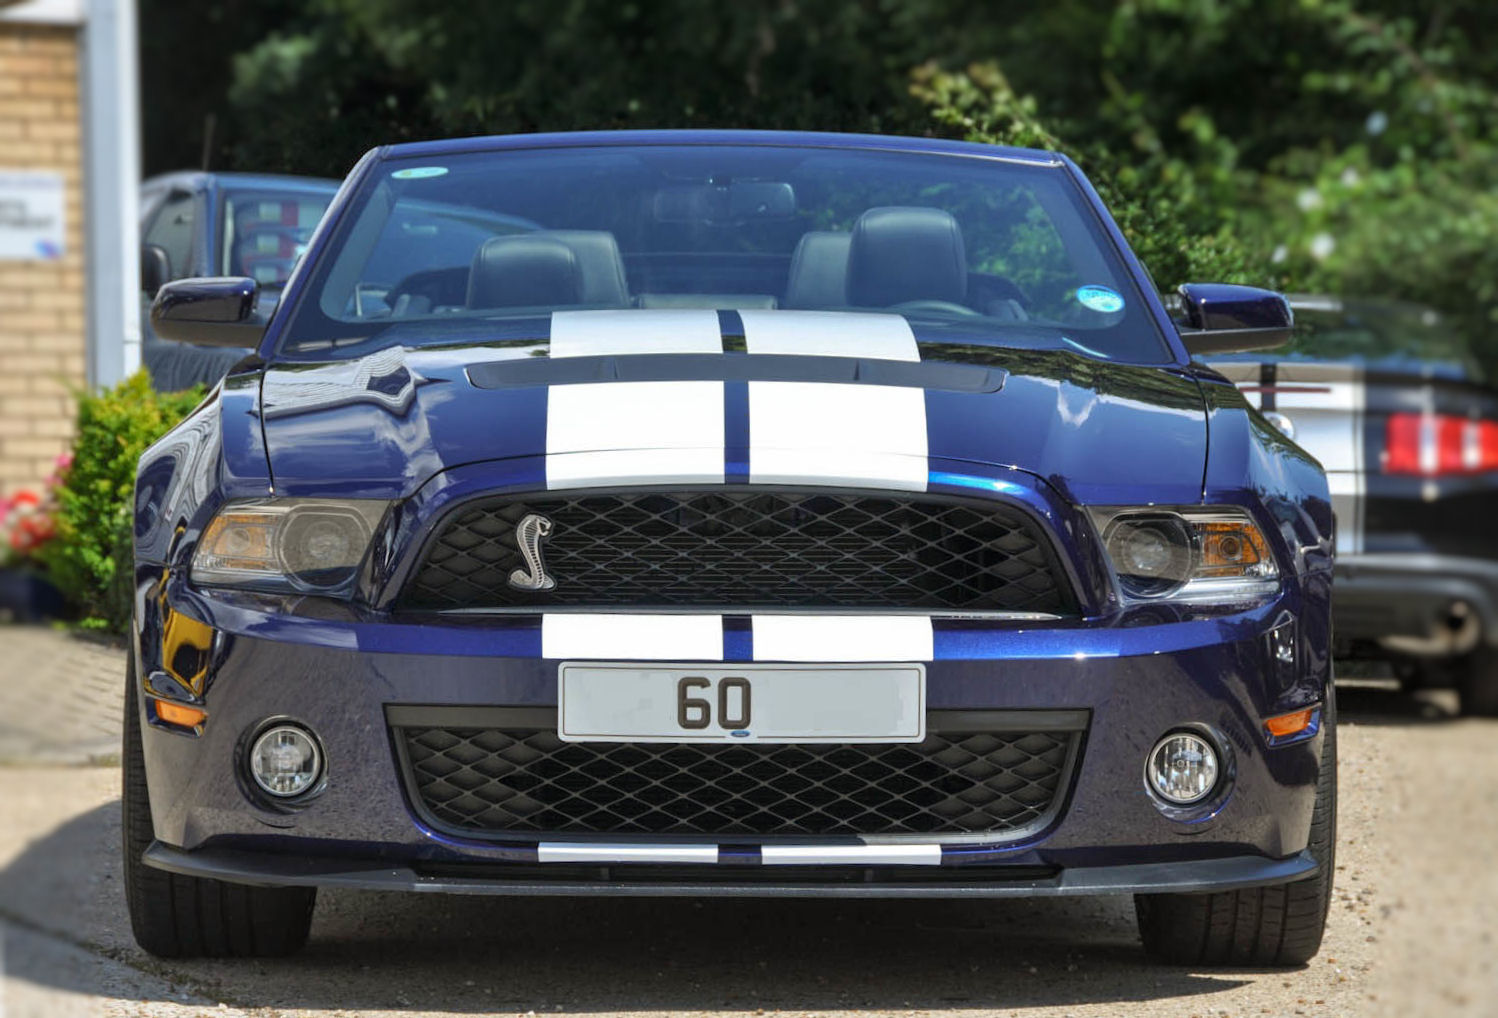 2011 Ford Mustang Shelby GT500 Convertible photo - 2